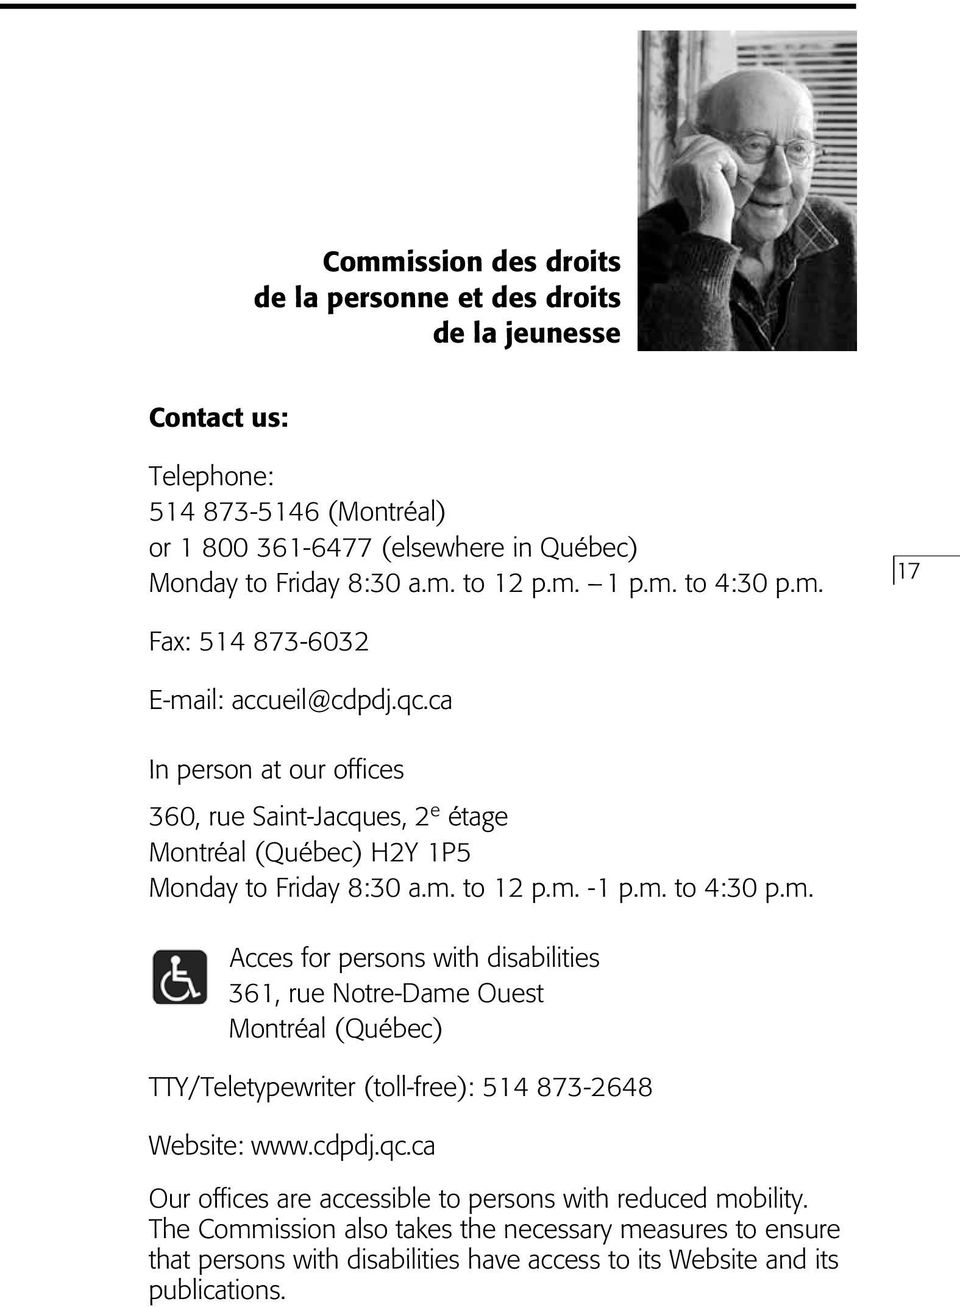 m. -1 p.m. to 4:30 p.m. Acces for persons with disabilities 361, rue Notre-Dame Ouest Montréal (Québec) TTY/Teletypewriter (toll-free): 514 873-2648 Website: www.cdpdj.qc.